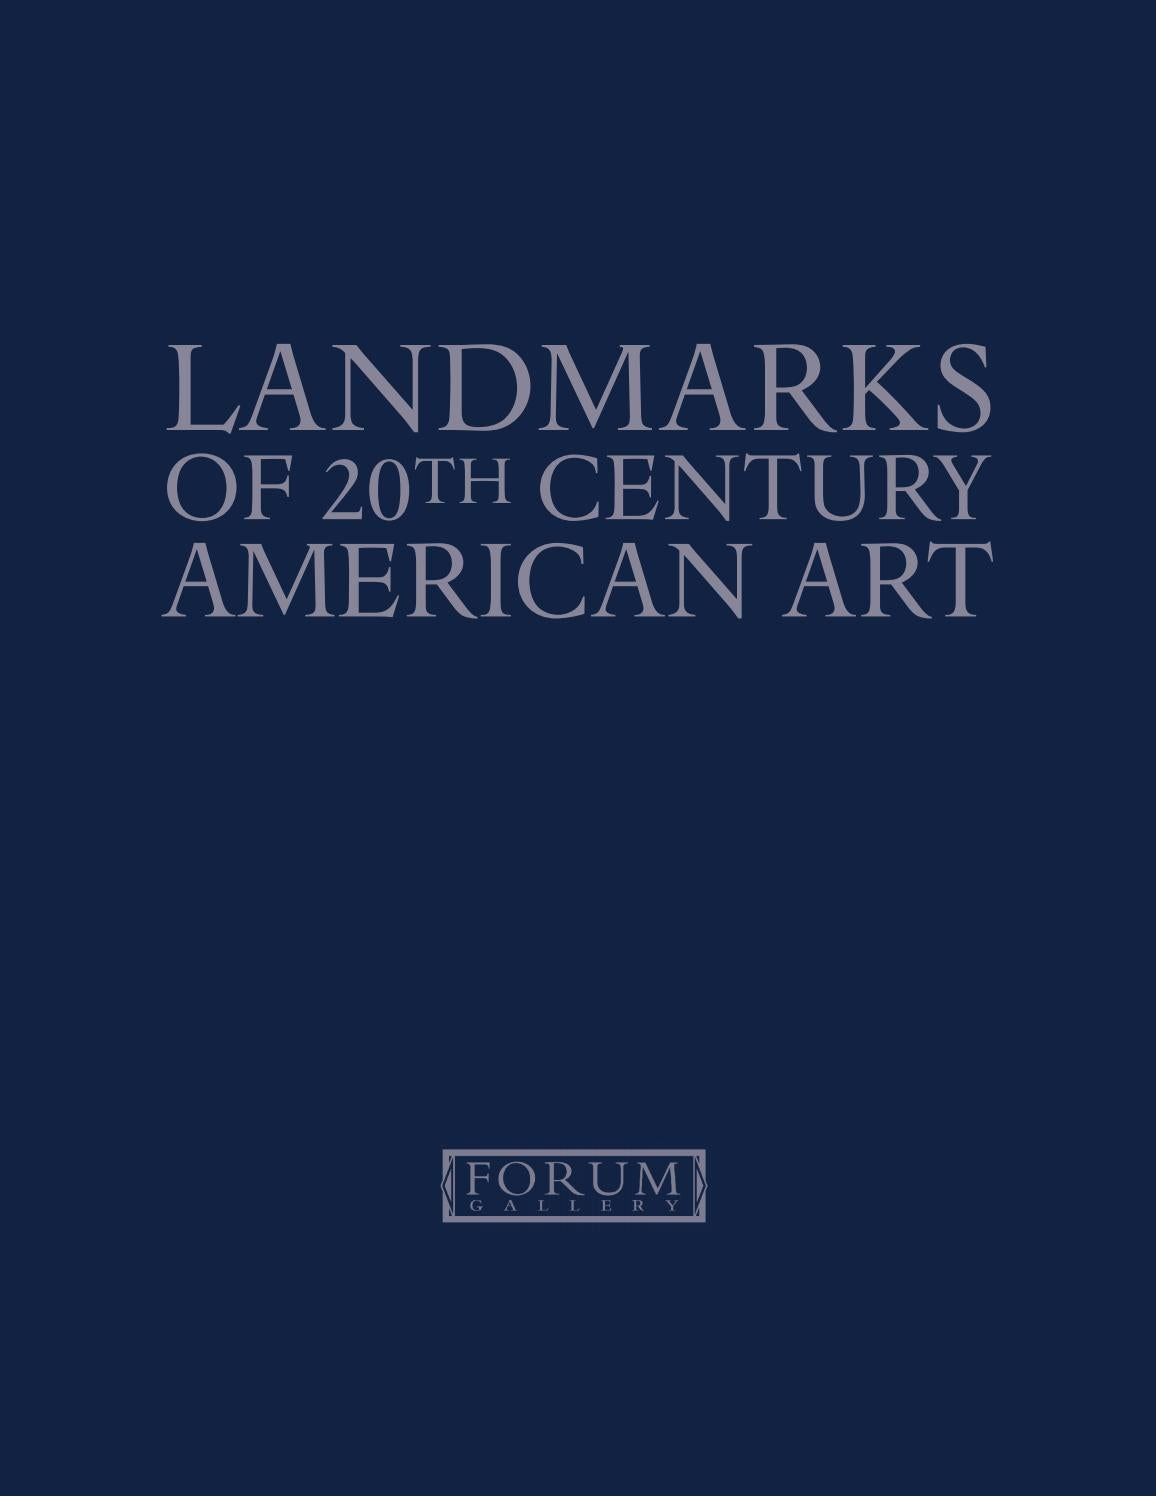 Fenetre K Line Forum Landmarks Of 20th Century American Art By Forum Gallery Issuu